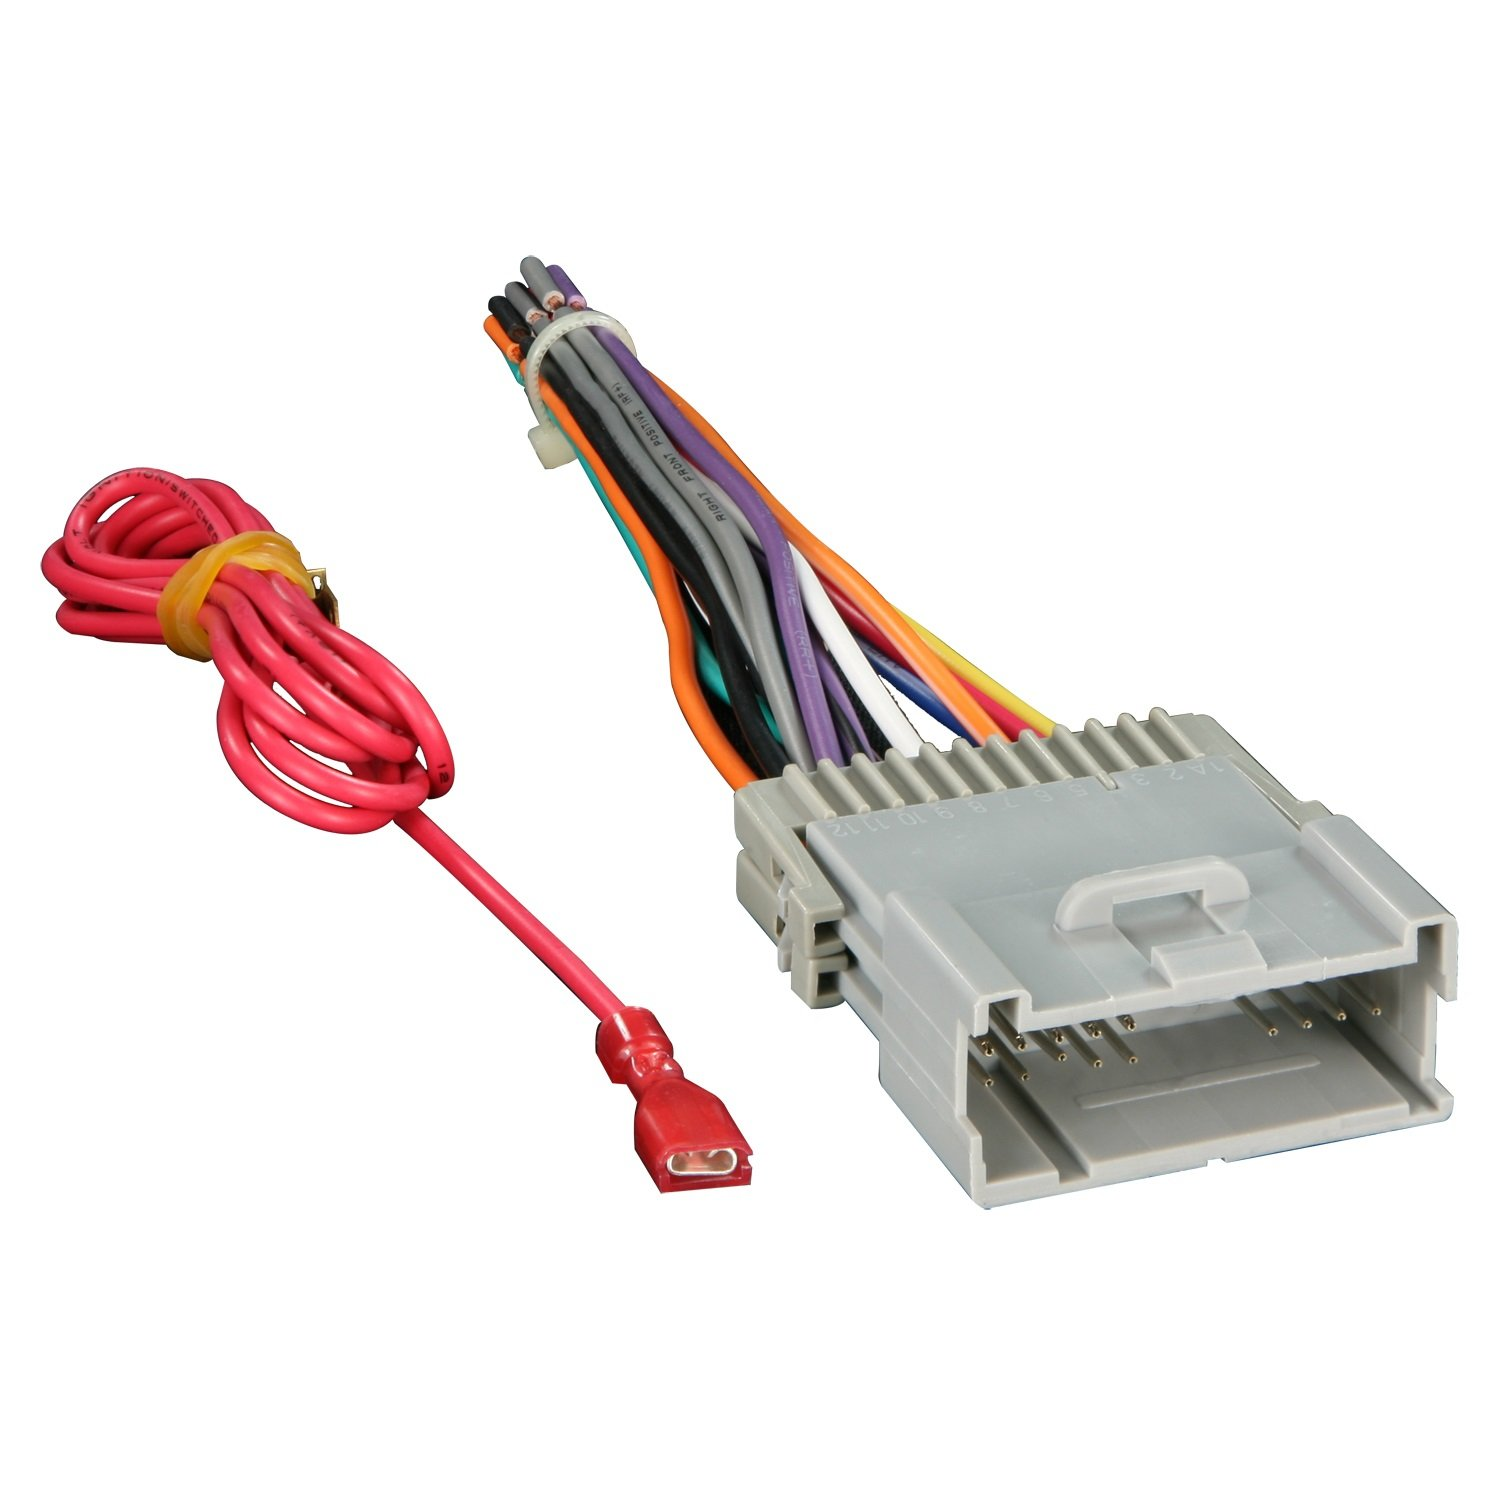 61eewxp9orL._SL1500_ amazon com metra 70 2003 radio wiring harness for gm 98 08 what wiring harness do i need for my car at virtualis.co